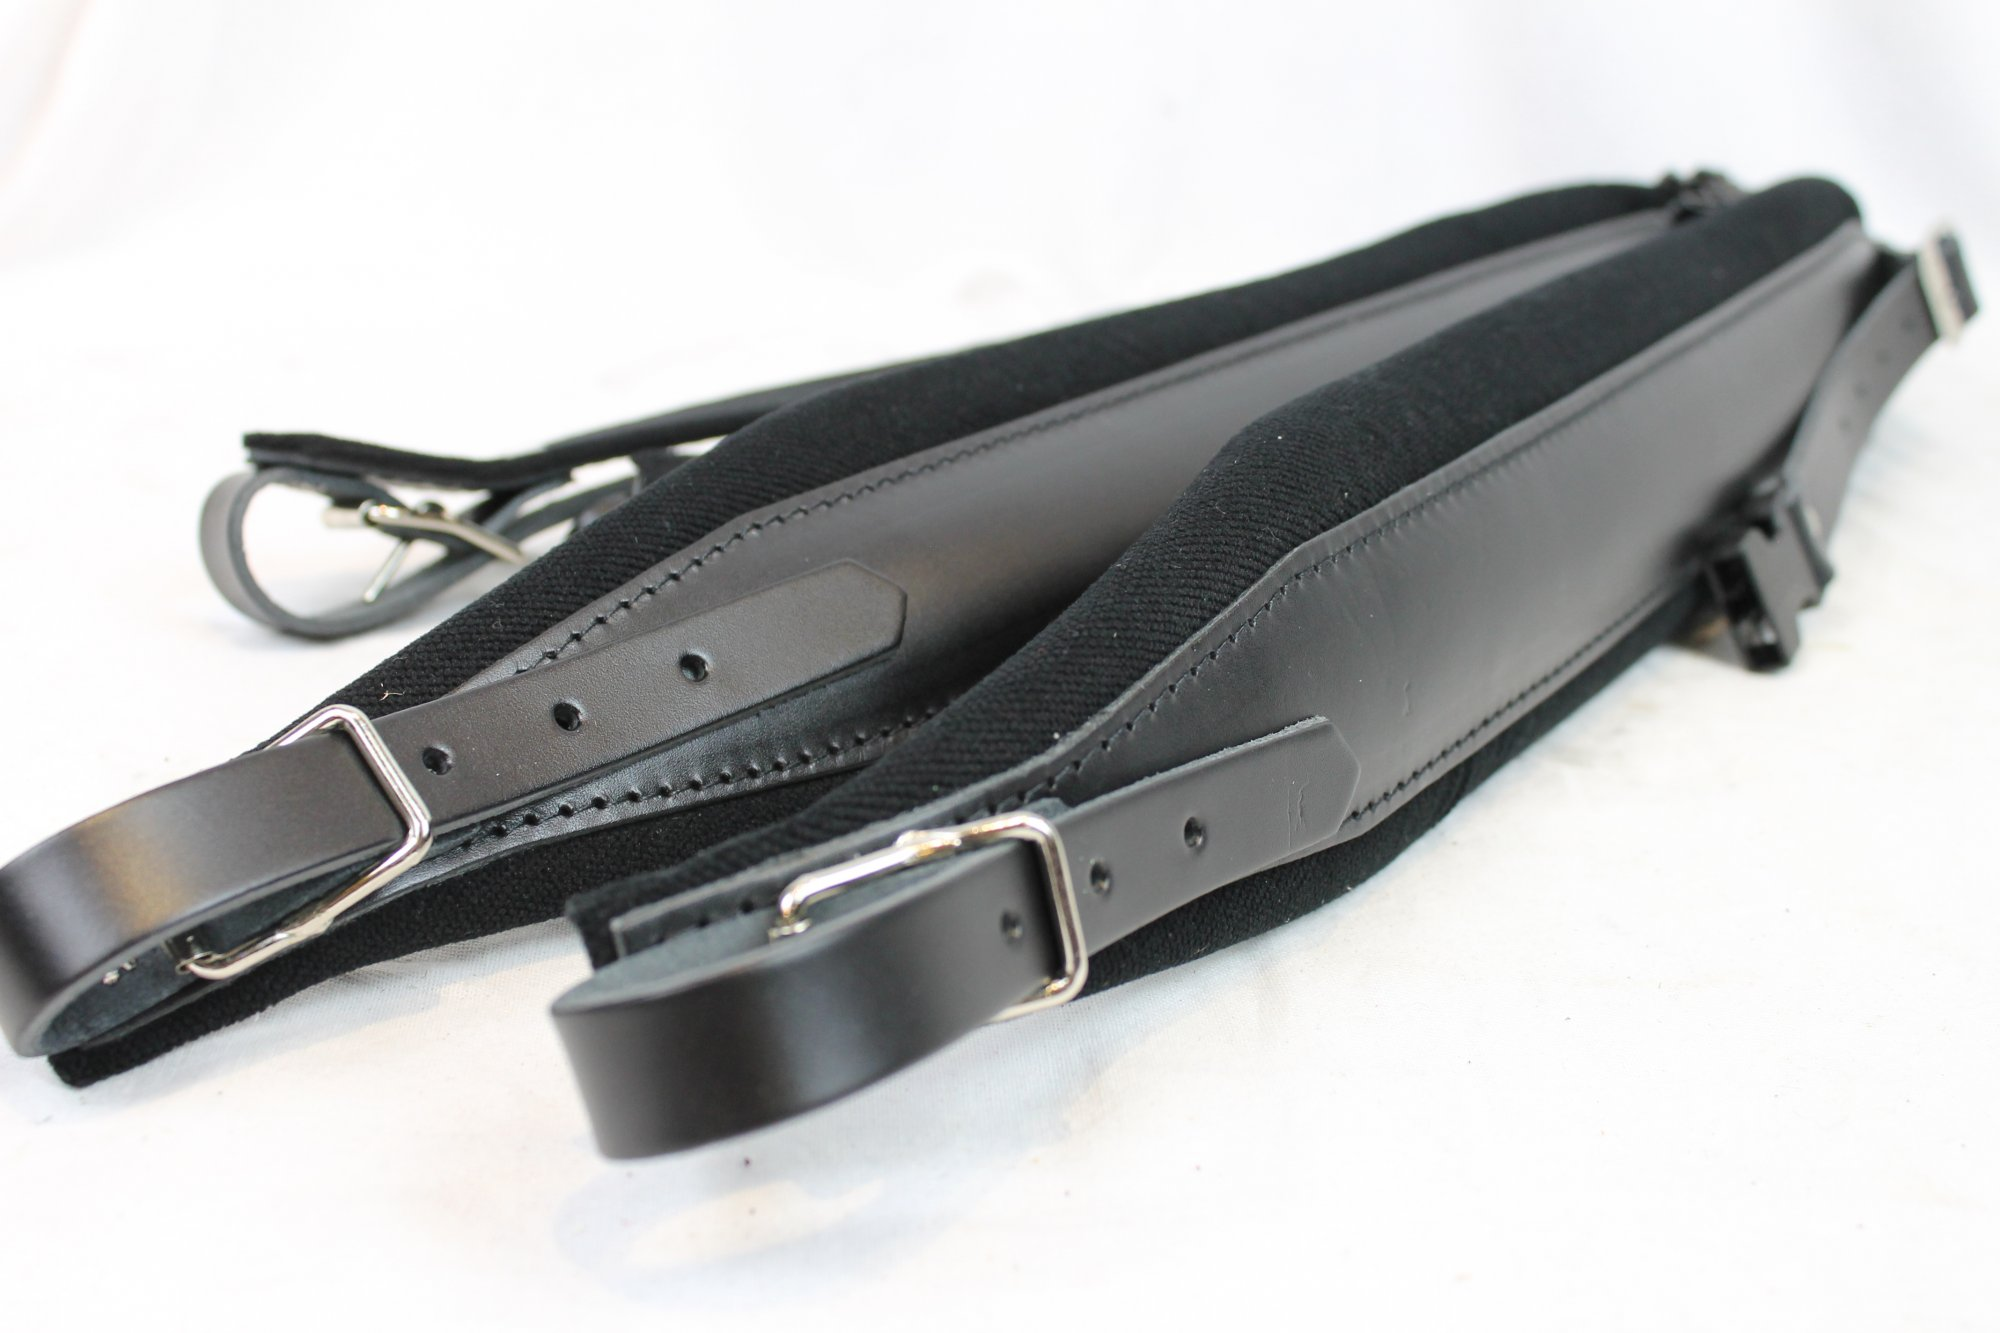 New Black Leather Velour Fuselli Accordion Shoulder Straps Width (8cm / 3.1in) Length (85~105cm / 33.5~41.3in)